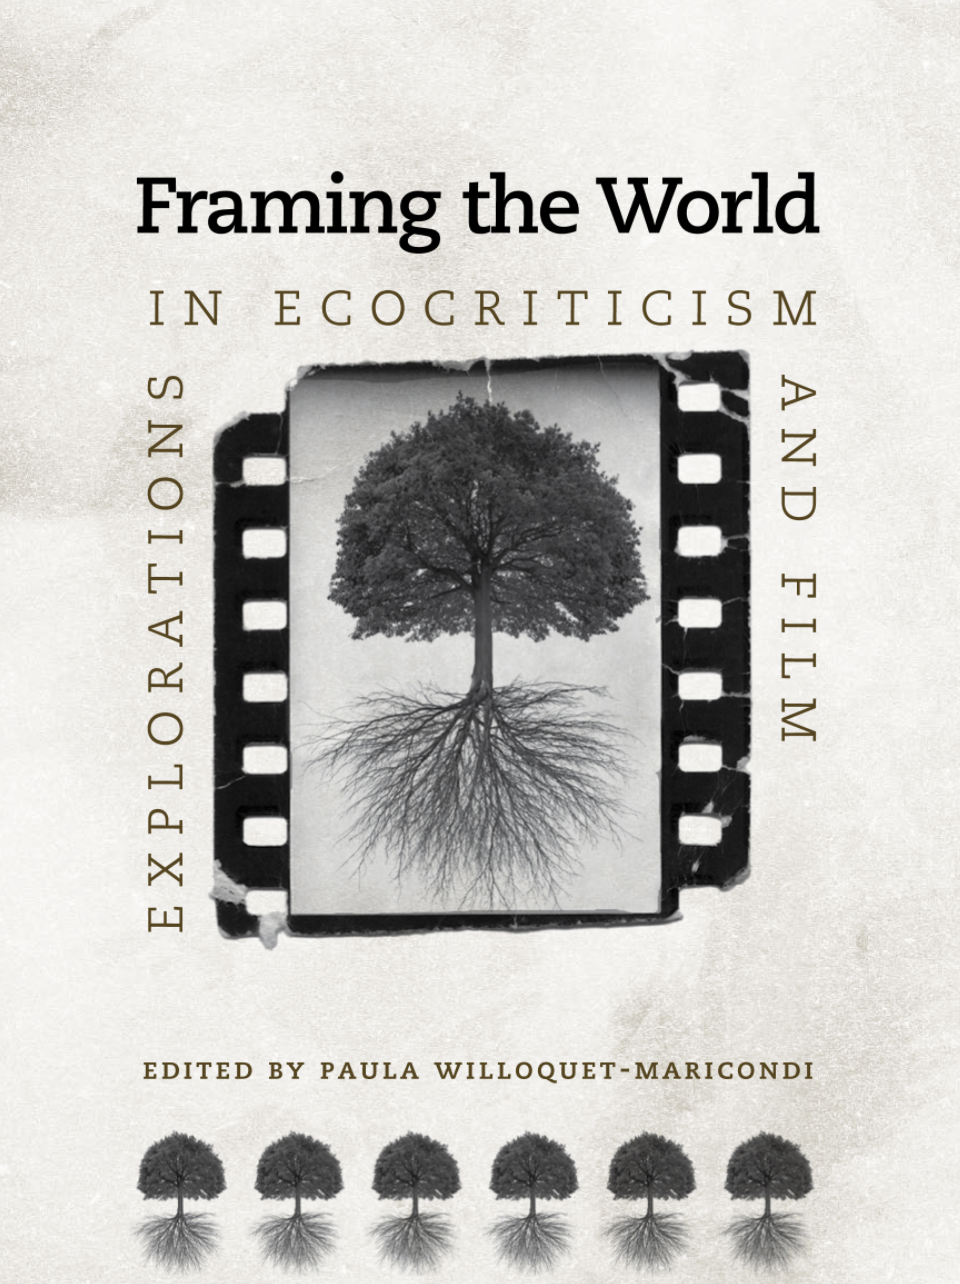 cover image for framing the world by willoquey-macdonald